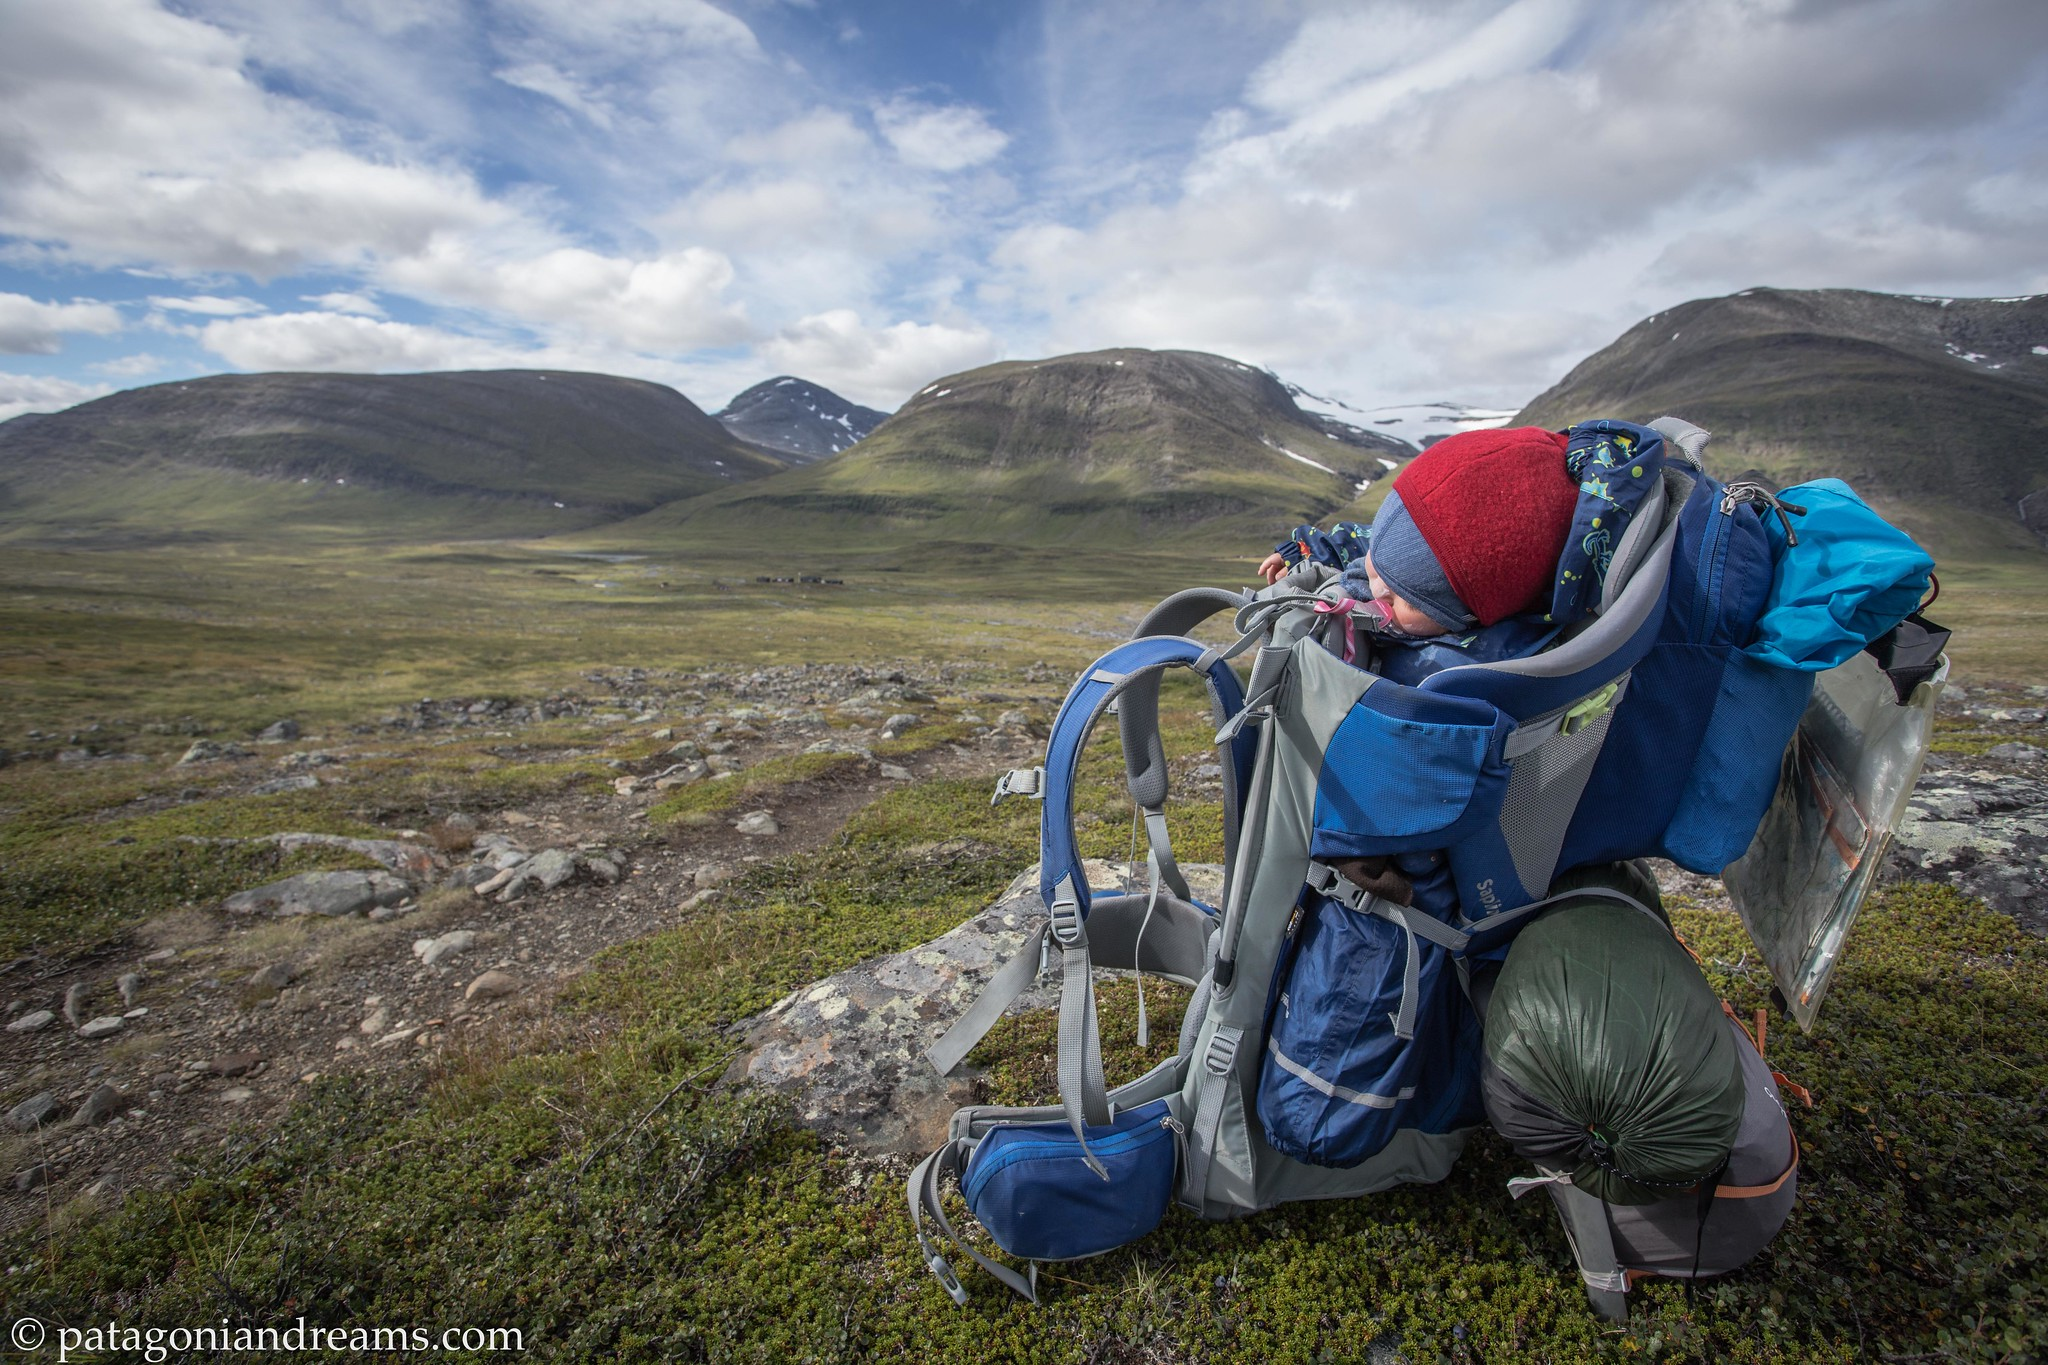 How to pack a 10 month old baby, a tent, diapers and food for 5 days in a backpack. Swedish Lapland.